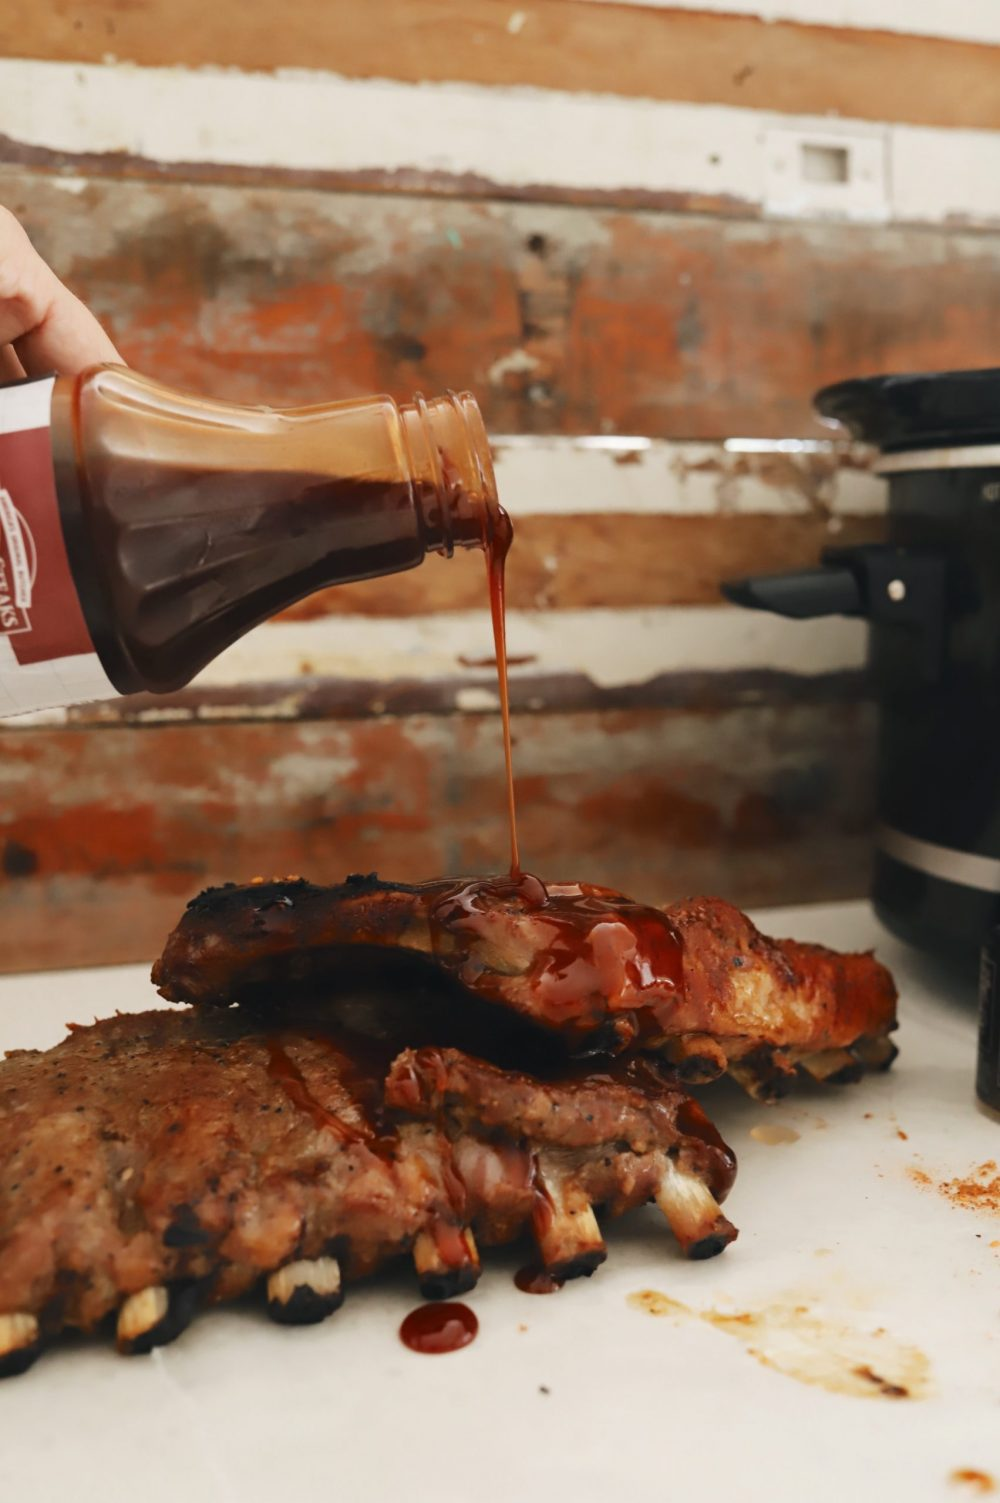 The Easiest Slow Cooker Ribs Recipe You Will Ever Make for tender fall off the bone ribs! |Slow Cooker Ribs by popular Florida lifestyle blog, Fresh Mommy Blog: image of someone pouring BBQ sauce on some slow cooker ribs.